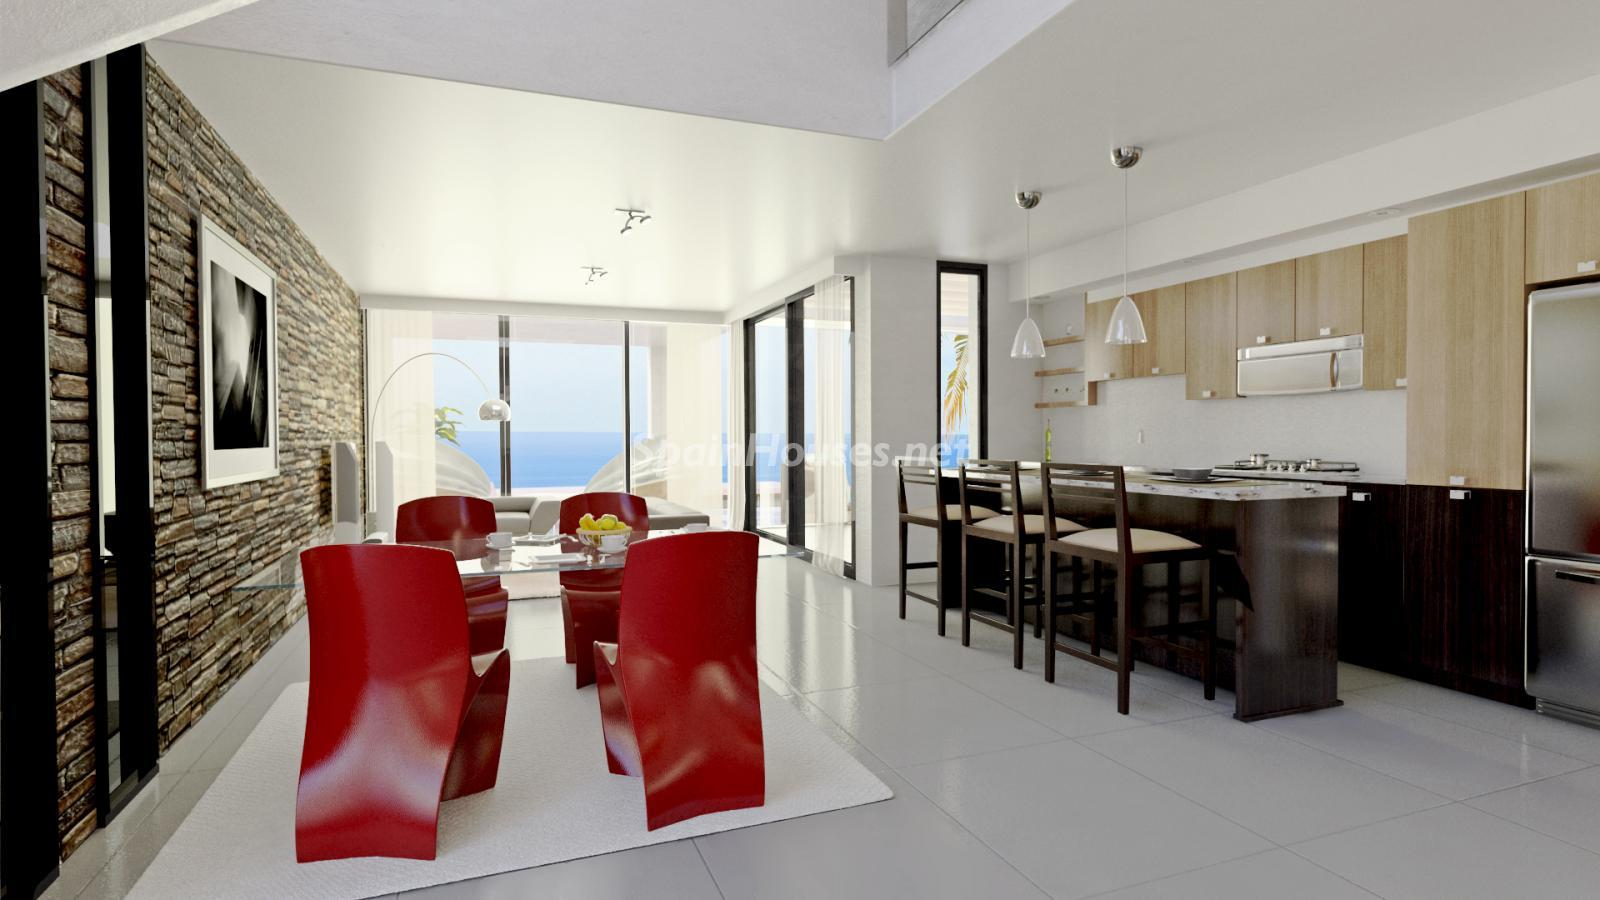 8. Buena Vista Hills - Buena Vista Hills, 26 Modern Villas with Panoramic Sea Views in Mijas, Costa del Sol